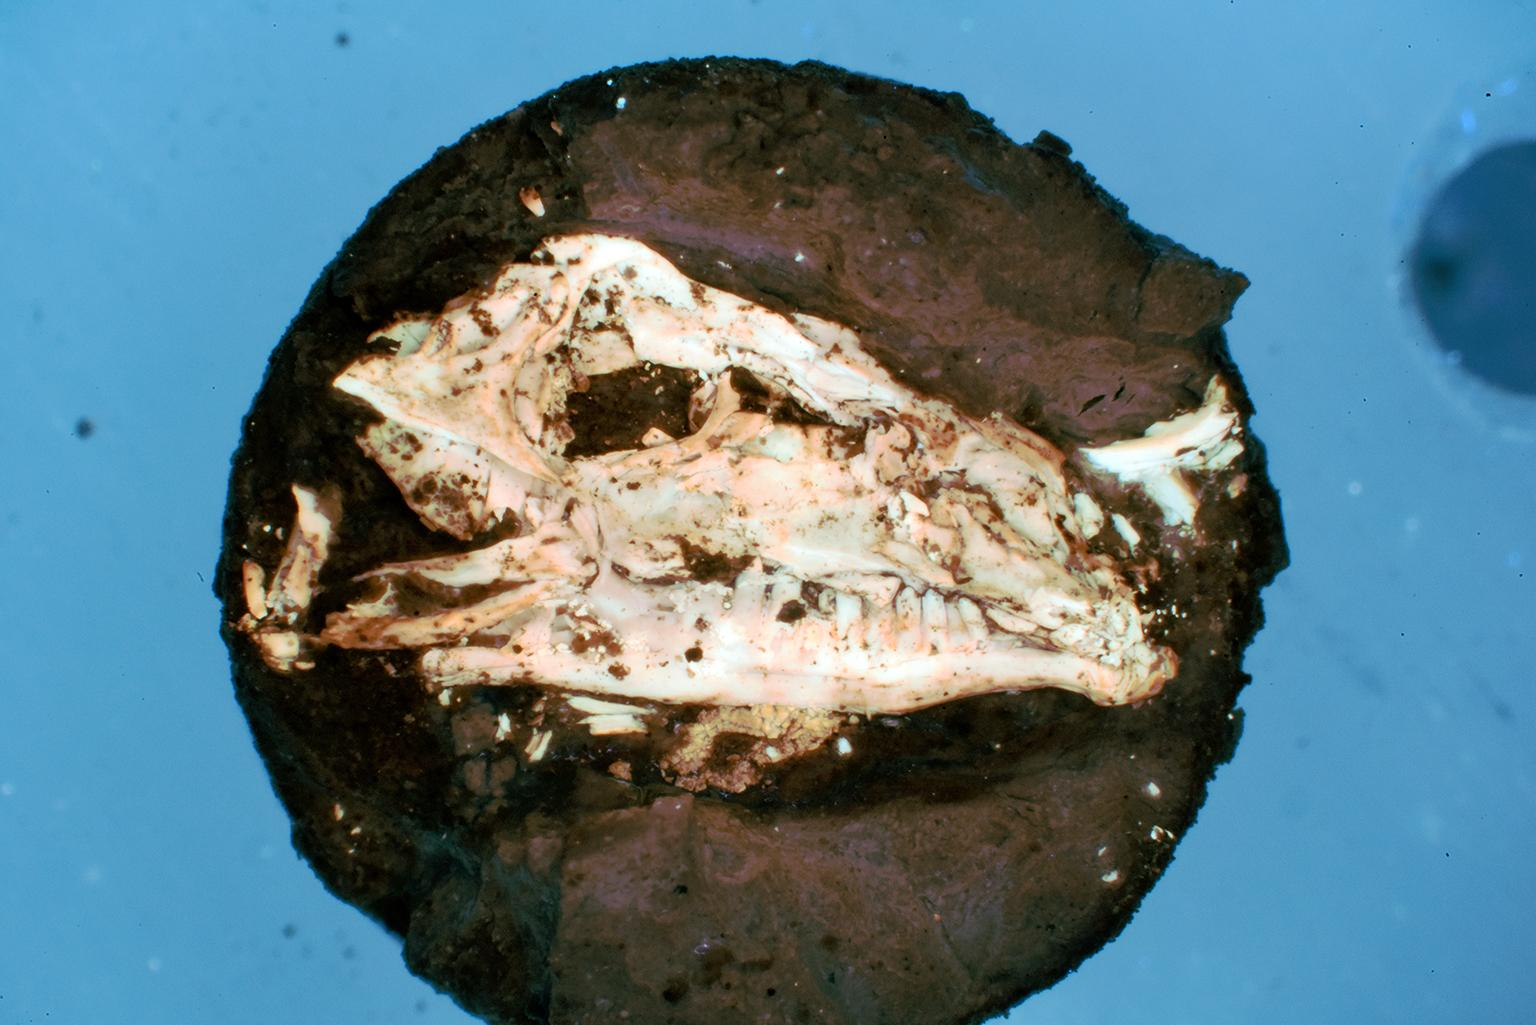 A synthetically fossilized lizard head created by Field Museum researcher Evan Saitta. (Evan Saitta / Field Museum)